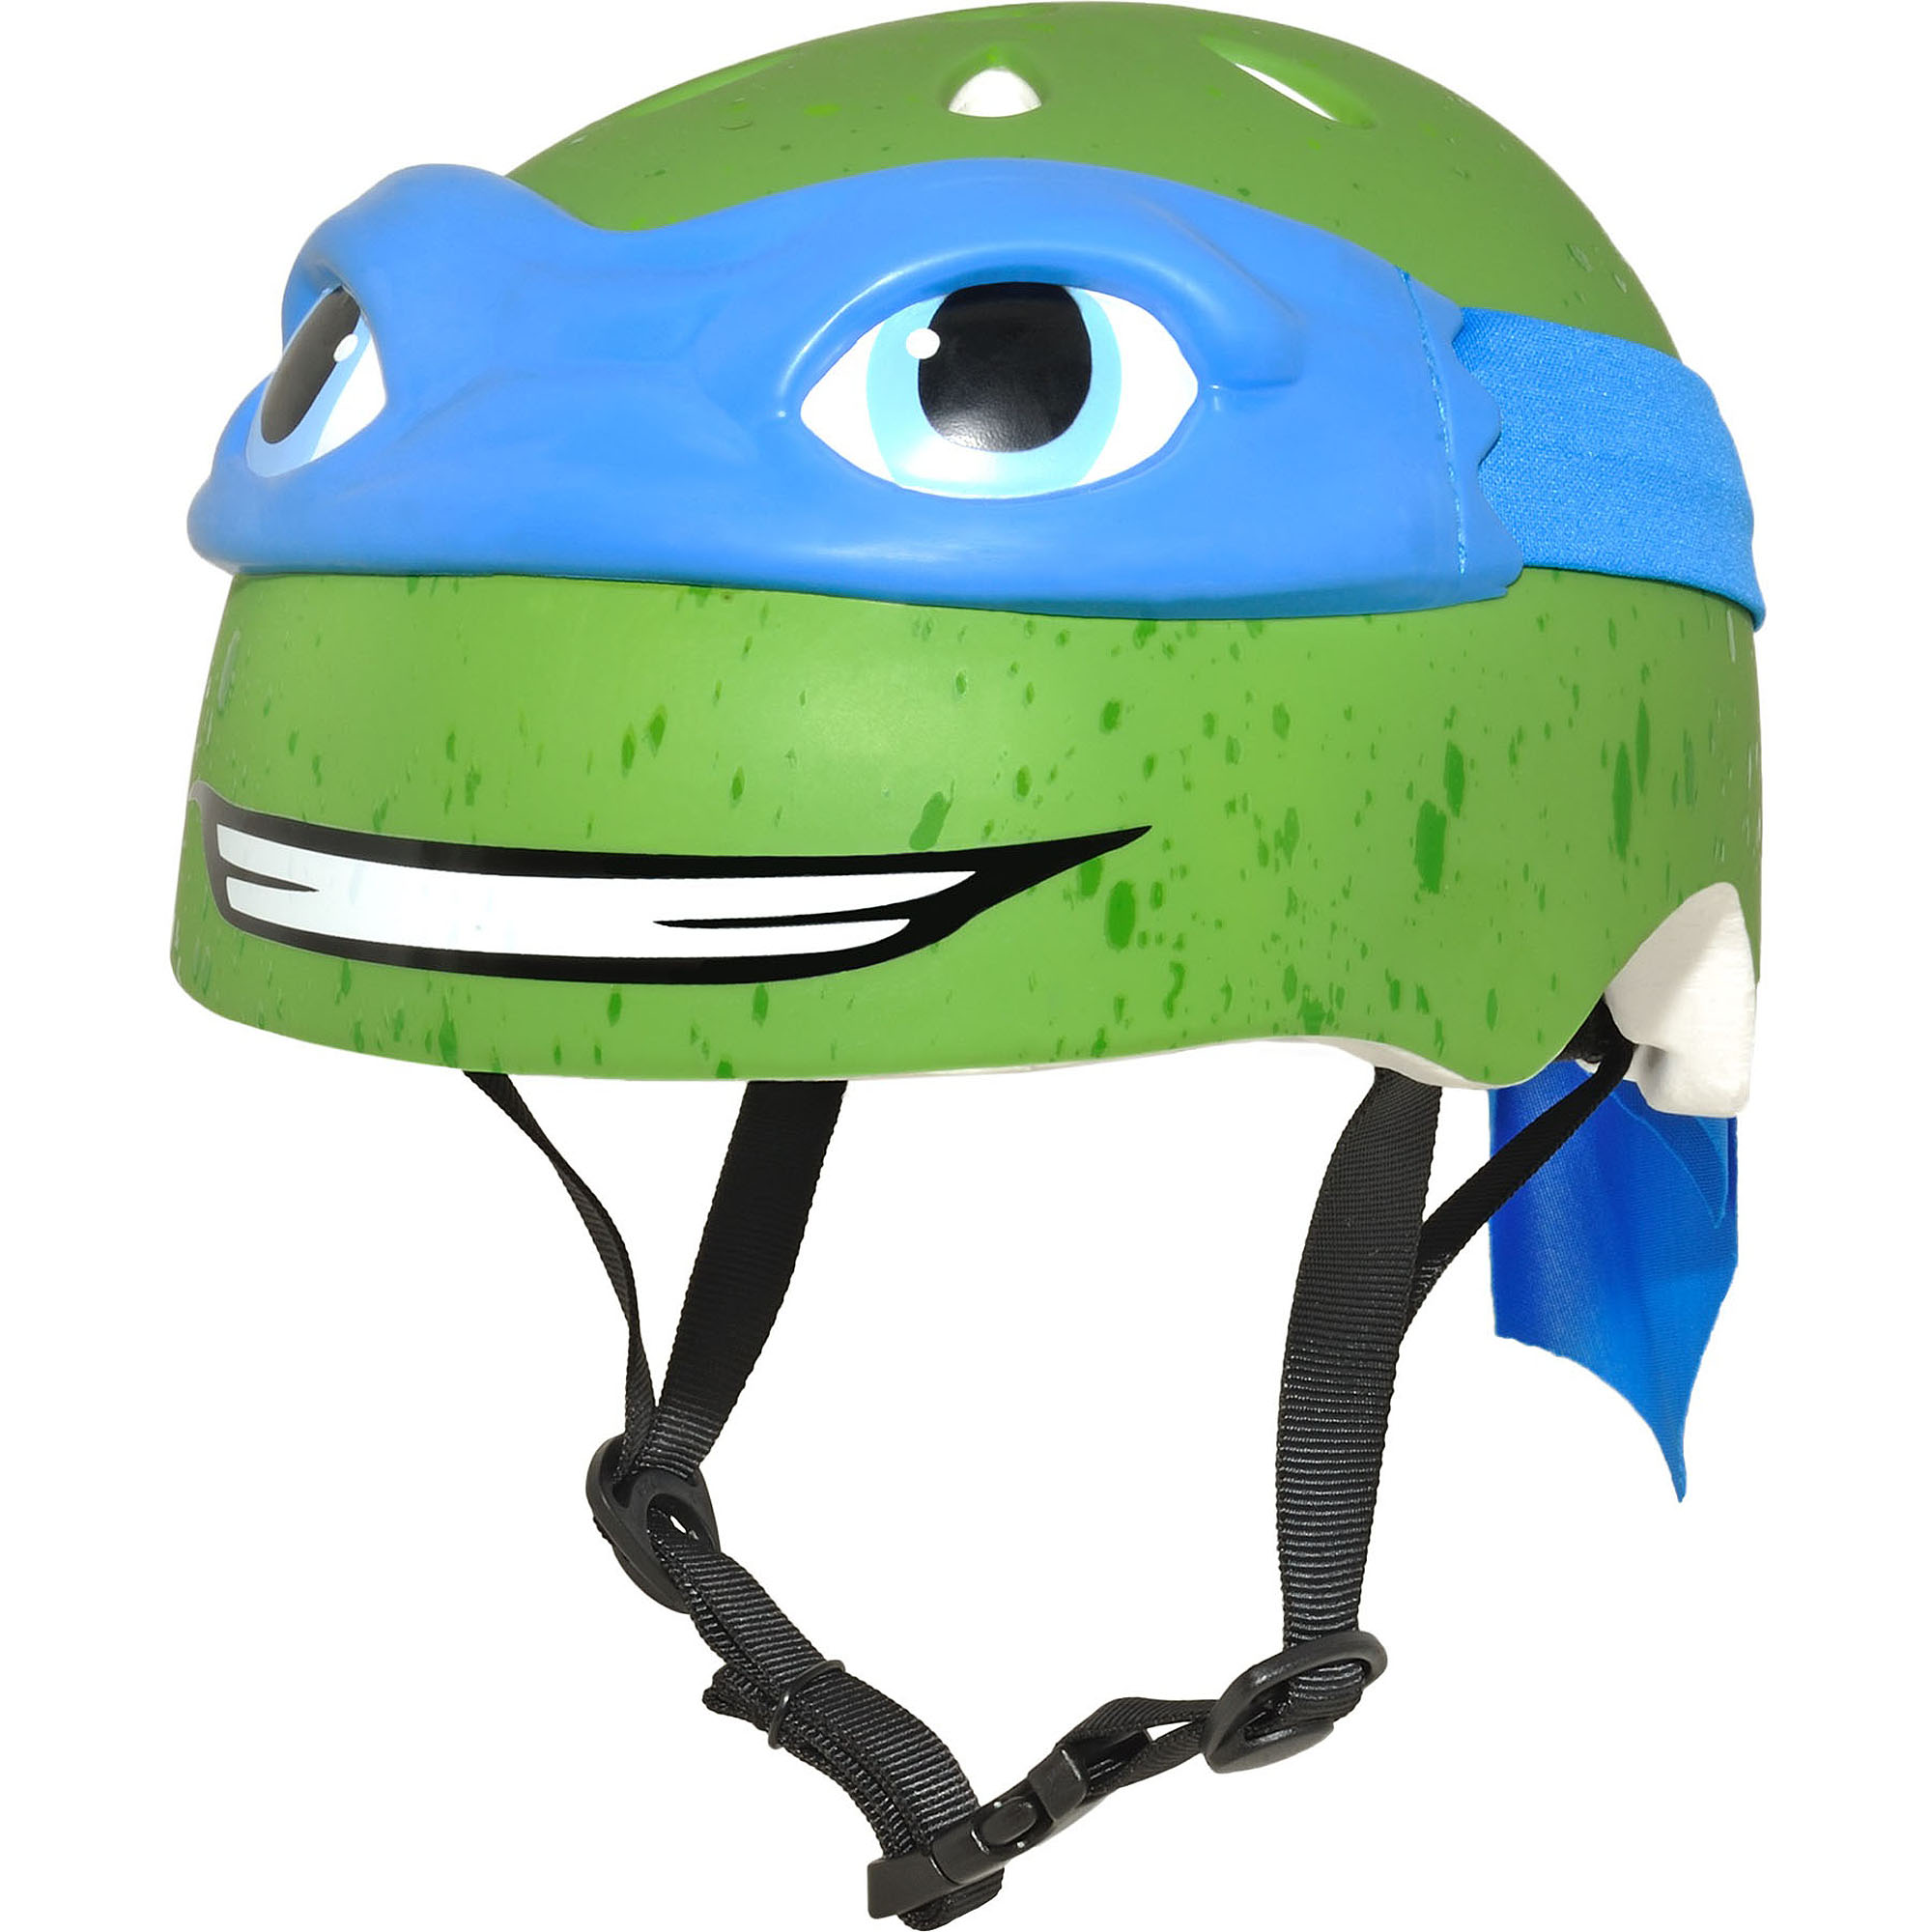 Nickelodeon Teenage Mutant Ninja Turtles Leonardo 3D Bike Helmet, Child